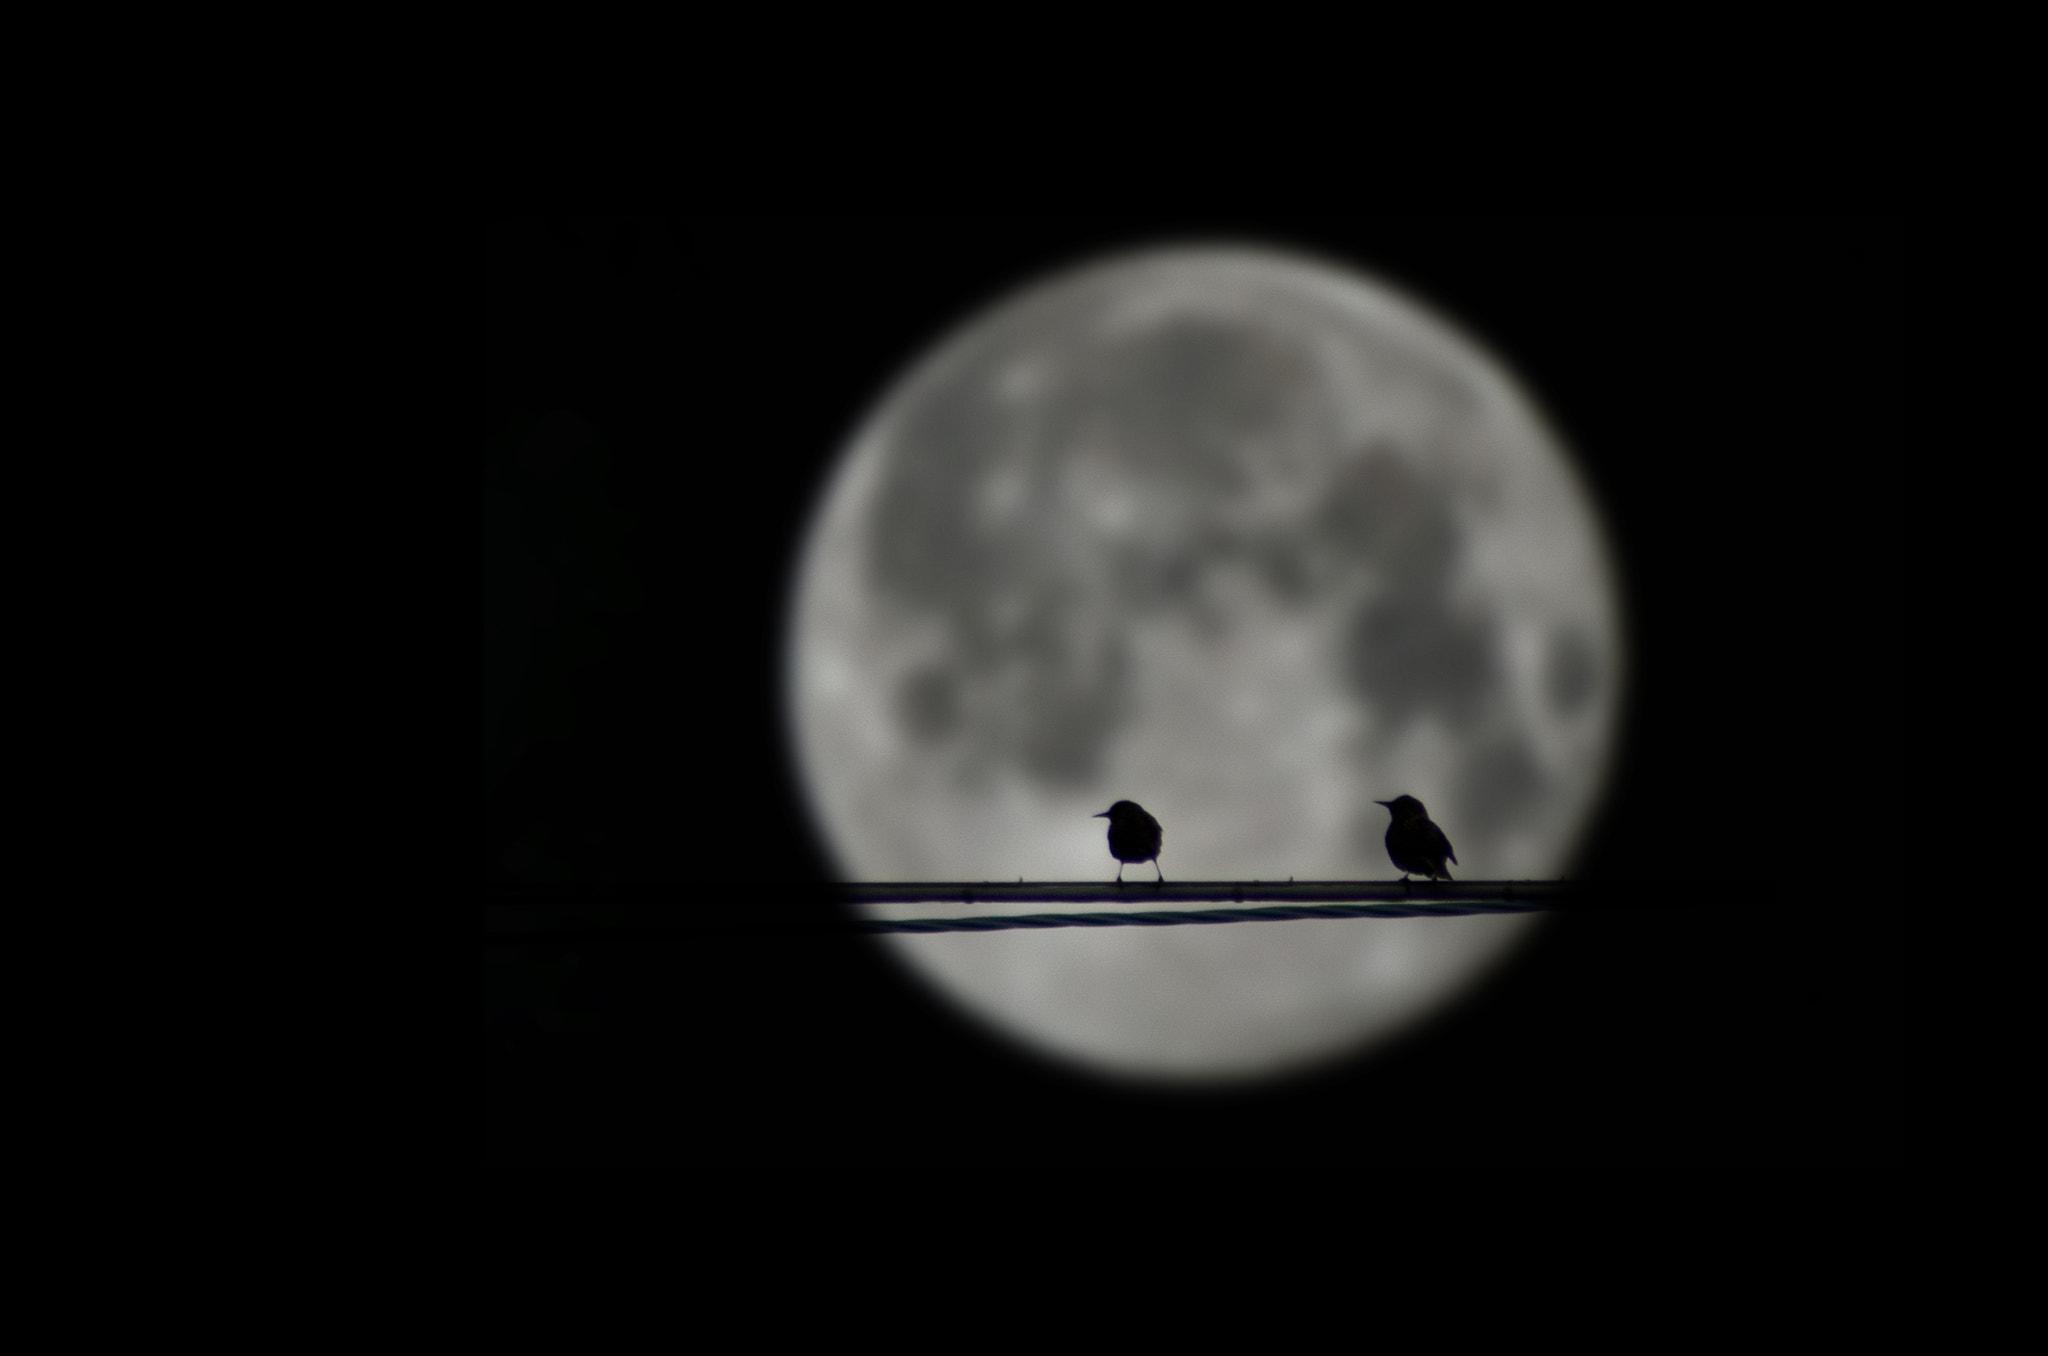 Photograph Alone in front of the moon by Marco Calandra on 500px